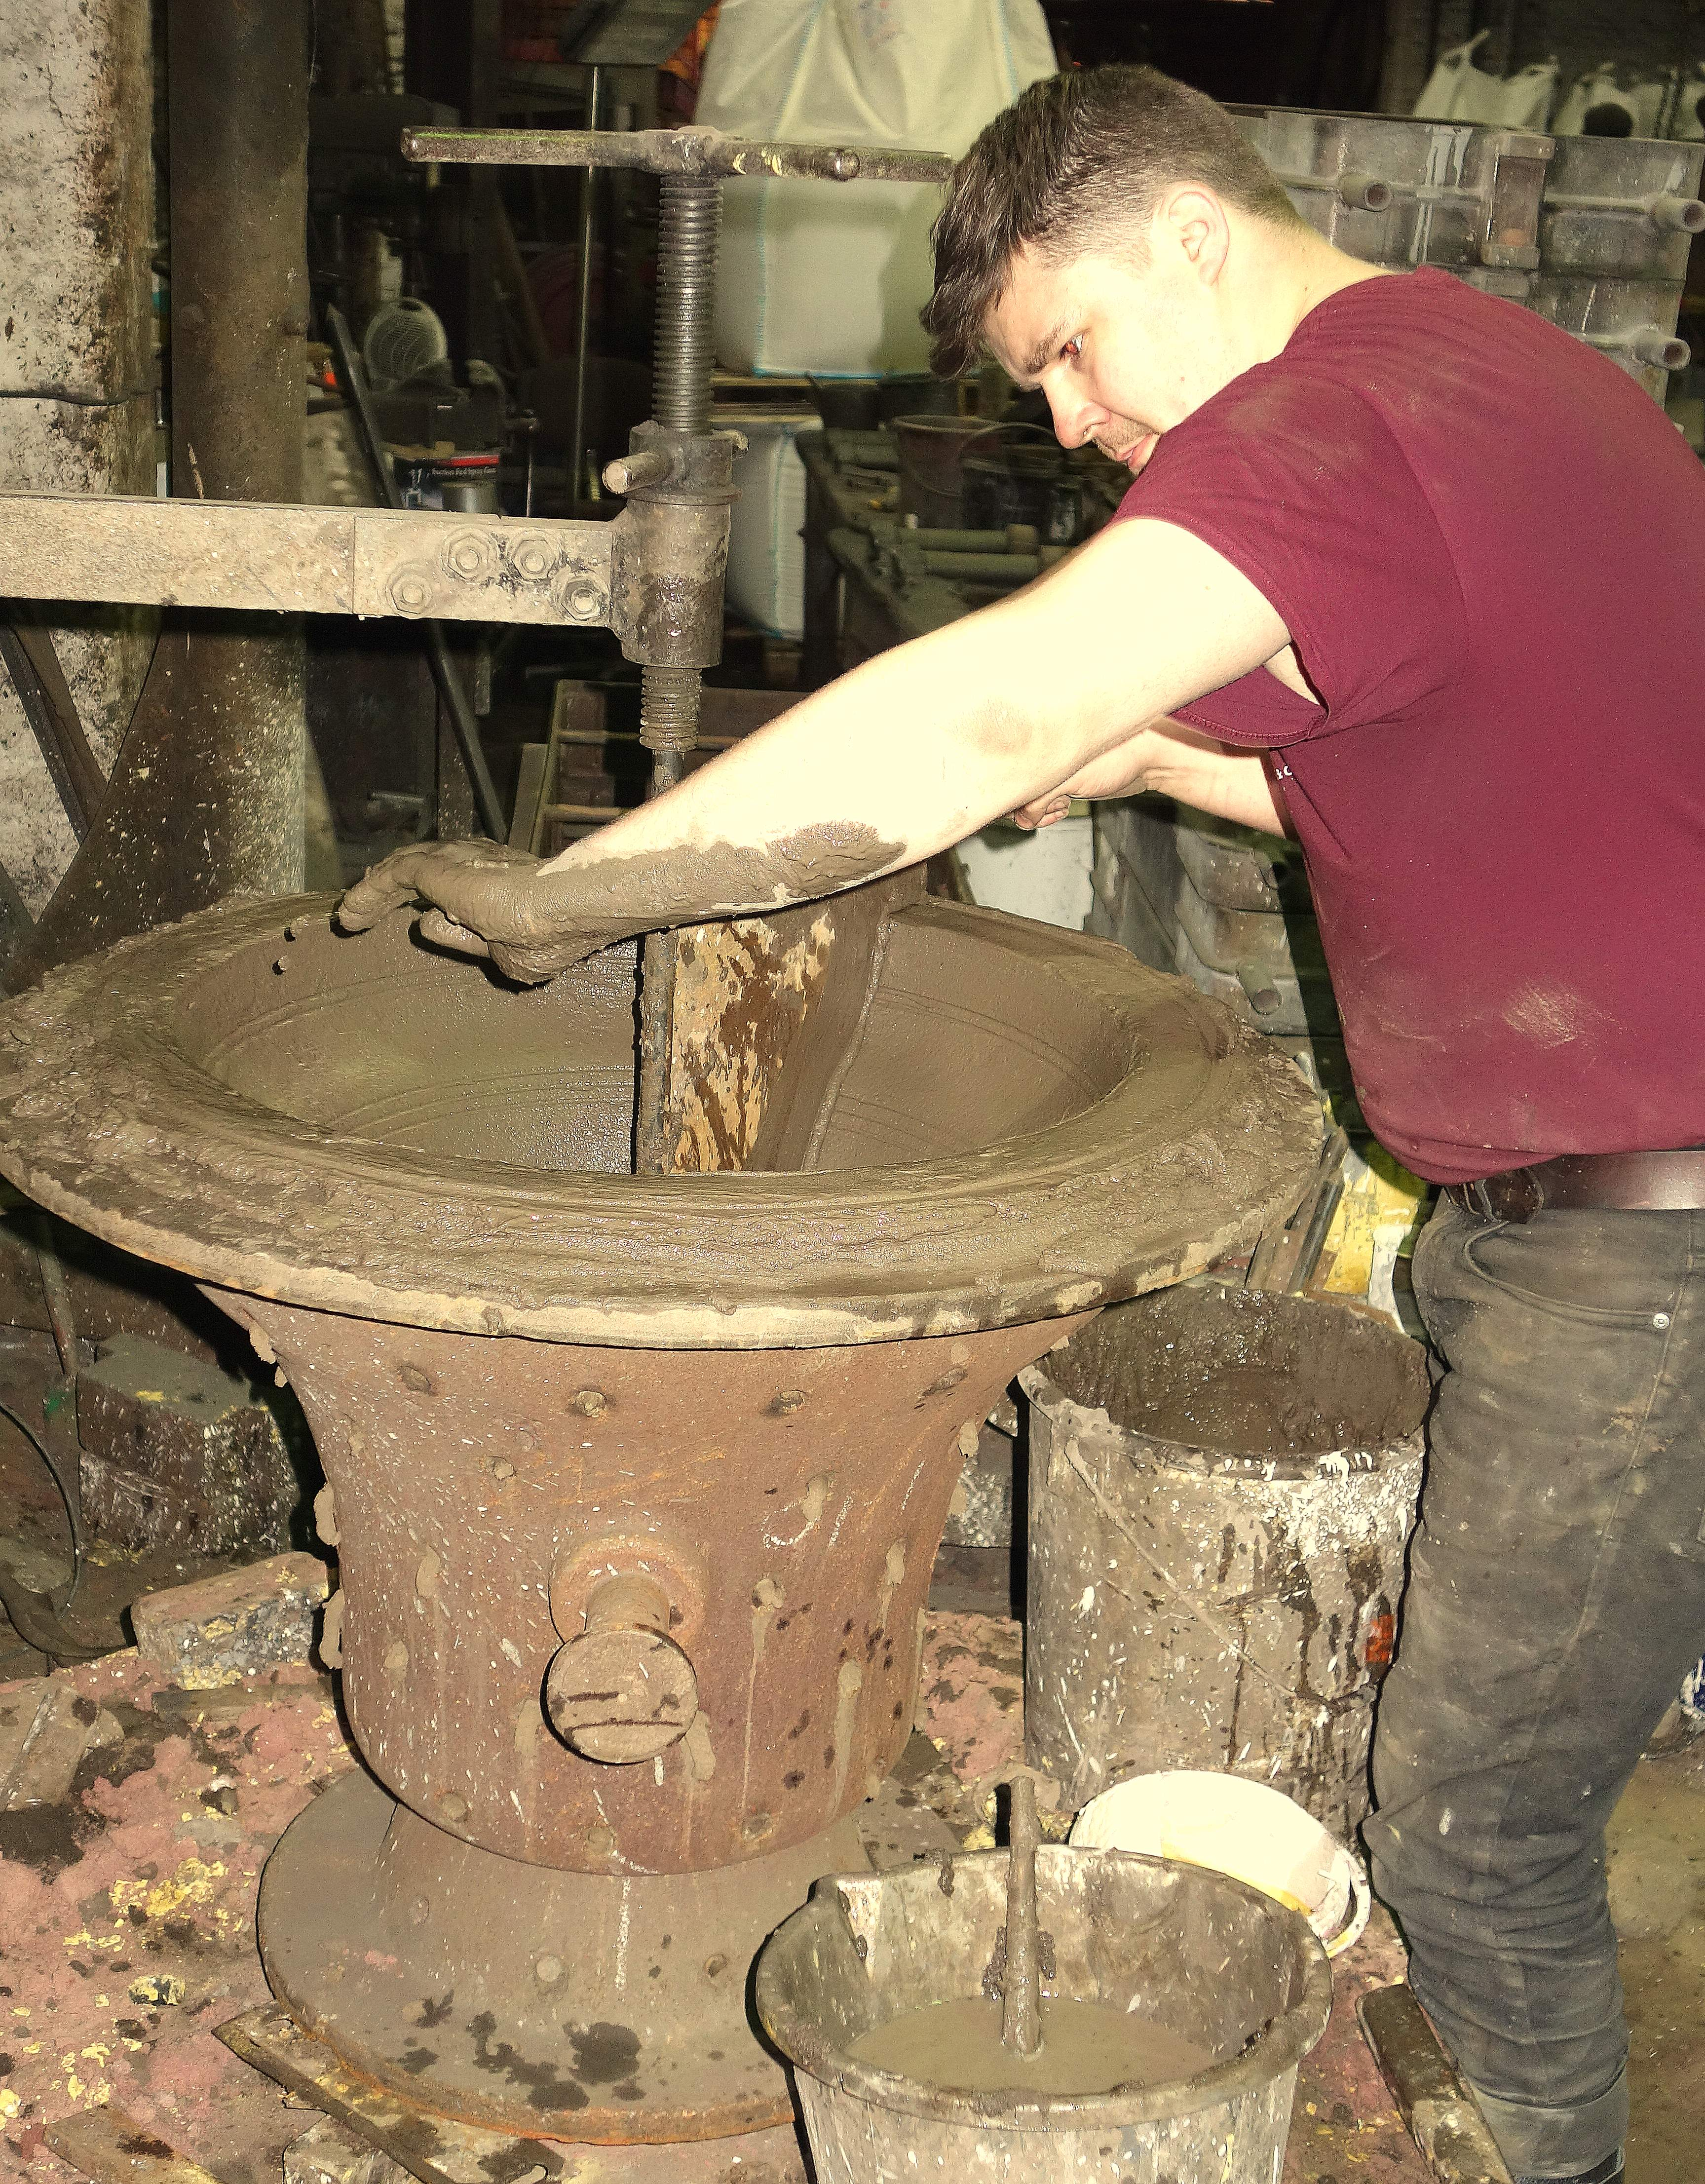 Anthony makes a start on one of the outer moulds - messy work!